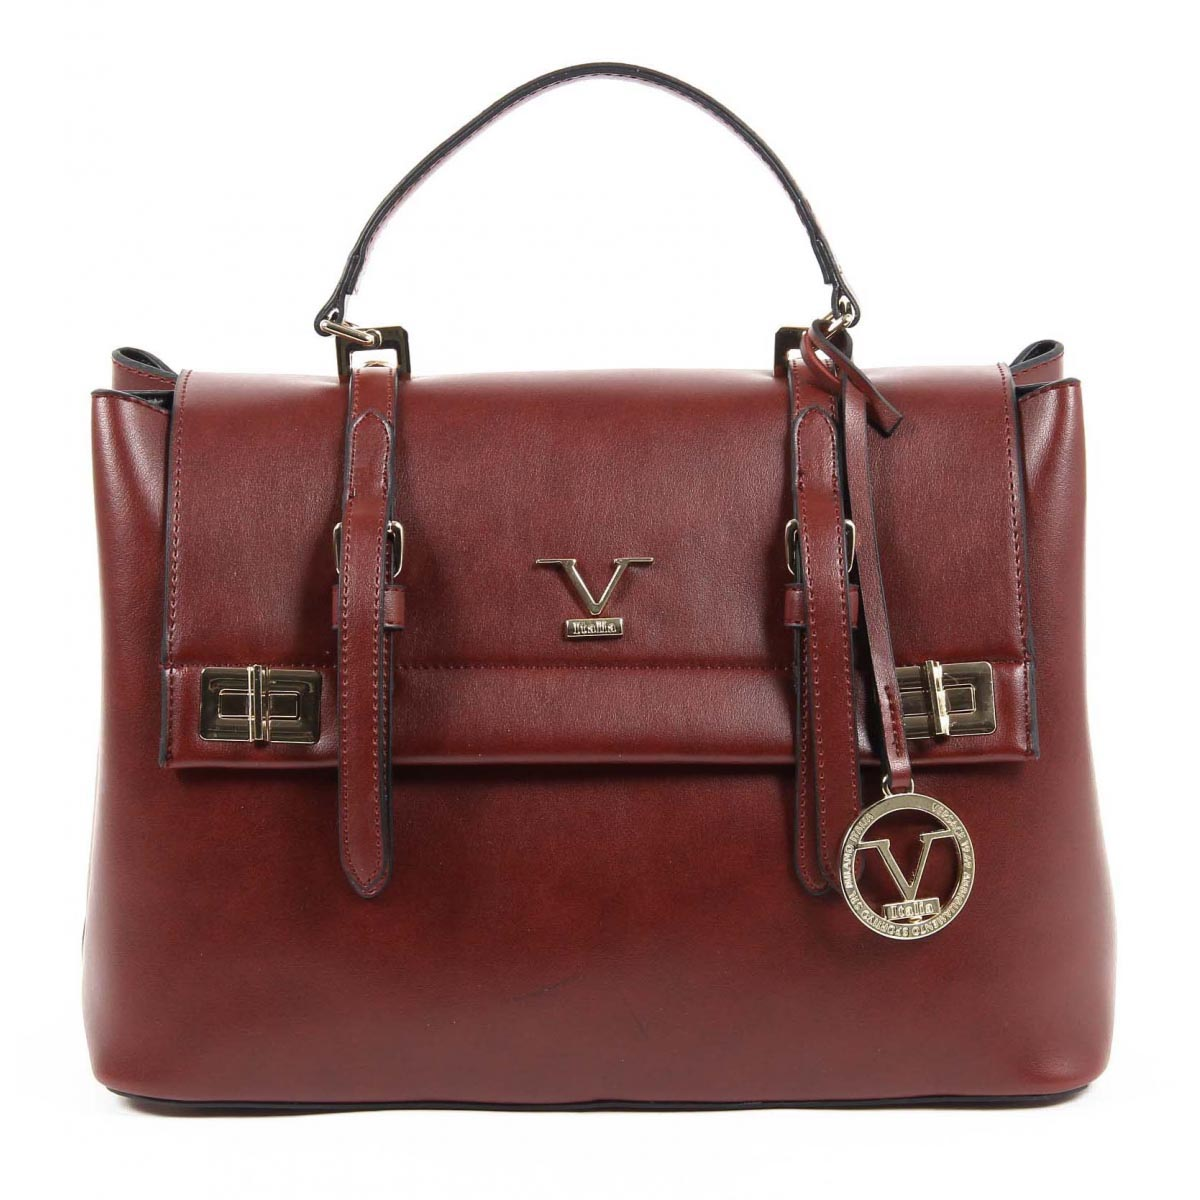 effdaadebb V 1969 Italia Womens Handbag VE017 CLARET RED